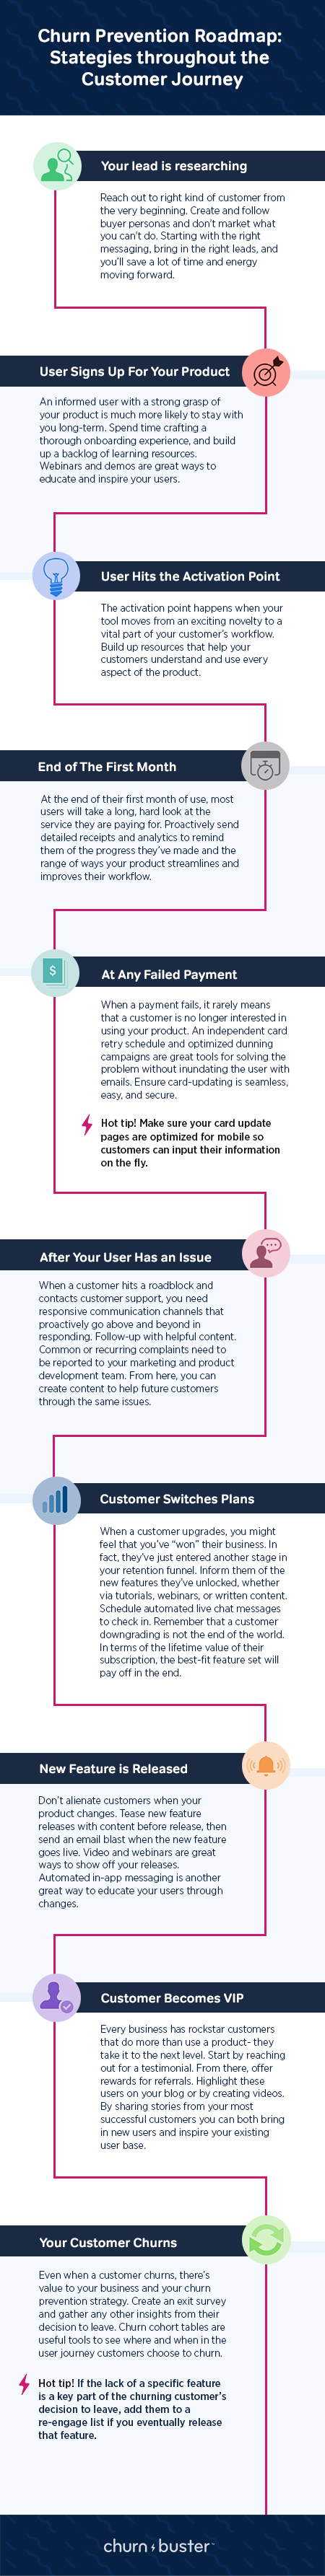 "This image is an infographic on the Churn Buster blog exploring different ways to prevent churn throughout the customer journey. Churn prevention ideas are broken into visual sections, each outlining a different crossroad in the user journey. First is ""your user is researching"". Reach out to the right kind of customer from the very beginning. Create and follow buyer personas and don't market what you can't do. Starting with the right messaging, bring in the right leads, and you'll save a lot of time and energy moving forward. Up next is when your user signs up. An informed user with a strong grasp of your product is much more likely to stay with your long-term. Spend time crafting a thorough onboarding experience, and build up a backlog of learning resources. Webinars and demos are great ways to educate and inspire your users. Number 3 is the activation point. The activation point happens the moment your tool moves from an exciting novelty to a vital part of your customer's workflow. Build up resources that help your customers understand and actively use every aspect of the product. Send consistent tips and tricks for best use to help users grow their understanding. Use live chat to automate messages celebrating success. At the end of Month 1 is the next big crossroad in the user journey. At the end of their first month of use, most users will take a long, hard look at the service they are paying for. Proactively send detailed receipts and analytics to remind them of the progress they've made and the range of ways your product streamlines and improves their workflow. Next is after a customer support complaint. When a customer hits a roadblock and contacts customer support, you need responsive communication channels that proactively go above and beyond in responding. Follow-up with helpful content. Common or recurring complaints need to be reported to your marketing and product development team. From here, you can create content to help future customers through the same issues. Then, if a user switches plans or tiers in your product. When a customer upgrades, you might feel that you've ""won"" their business. In fact, they've just entered another stage in your retention funnel. Inform them of the new features they've unlocked, whether via tutorials, webinars, or written content. Schedule automated live chat messages to check in. Remember that a customer downgrading is not the end of the world- in terms of the lifetime value of their subscription, the best-fit feature set will pay off in the end. Up next is any feature releases. Every feature releases need churn prevention strategies following its release. Don't alienate customers when your product changes. Tease new feature releases with content before release, then send an email blast when the new feature goes live. Video and webinars are great ways to show off your releases. Automated in-app messaging is another great way to educate your users through changes. Number 9 is when your customer becomes a VIP user. Every business has rockstar customers that do more than use a product- they take it to the next level. Start by reaching out for a testimonial. From there, offer rewards for referrals. Highlight these users on your blog or by creating videos. By sharing stories from your most successful customers you can both bring in new users and inspire your existing base. Last, but not least, when your customer churns the road isn't over for churn prevention. Even when a customer churns, there's value to your business and your churn prevention strategy. Create an exit survey and gather any other insights from their decision to leave. Churn cohort tables are useful tools to see where and when in the user journey customers choose to churn. If the lack of a specific feature is a key part of the churning customer's decision to leave, add them to a re-engage list if you eventually release that feature."